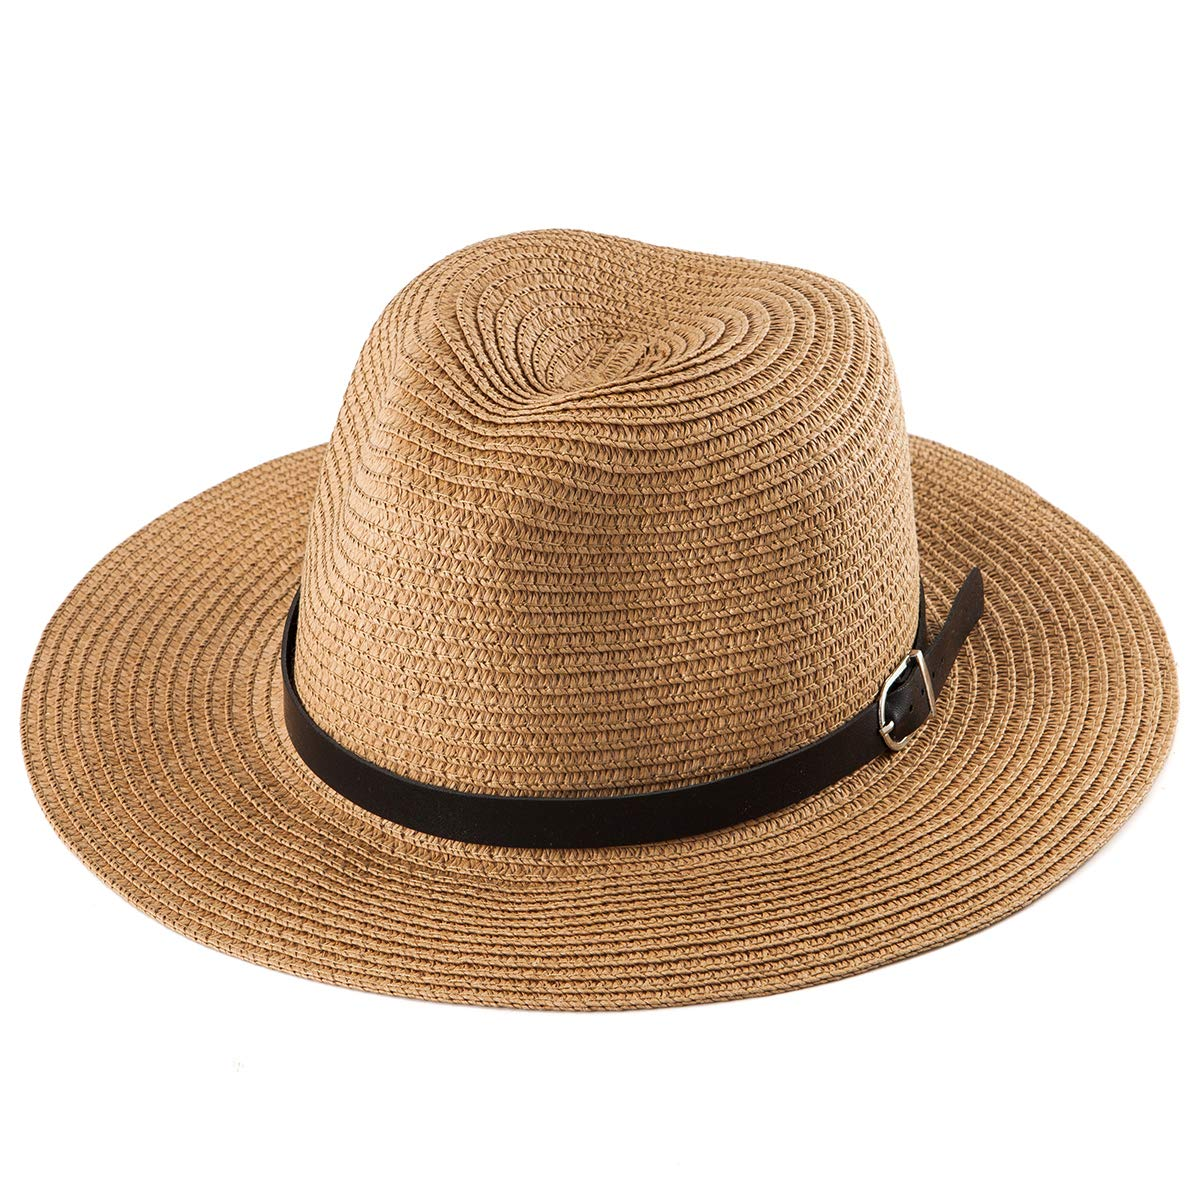 Wide Brim Fedora Women Hat - Khaki Straw Hat Women Sun Hat Men Fedora Floppy Hat